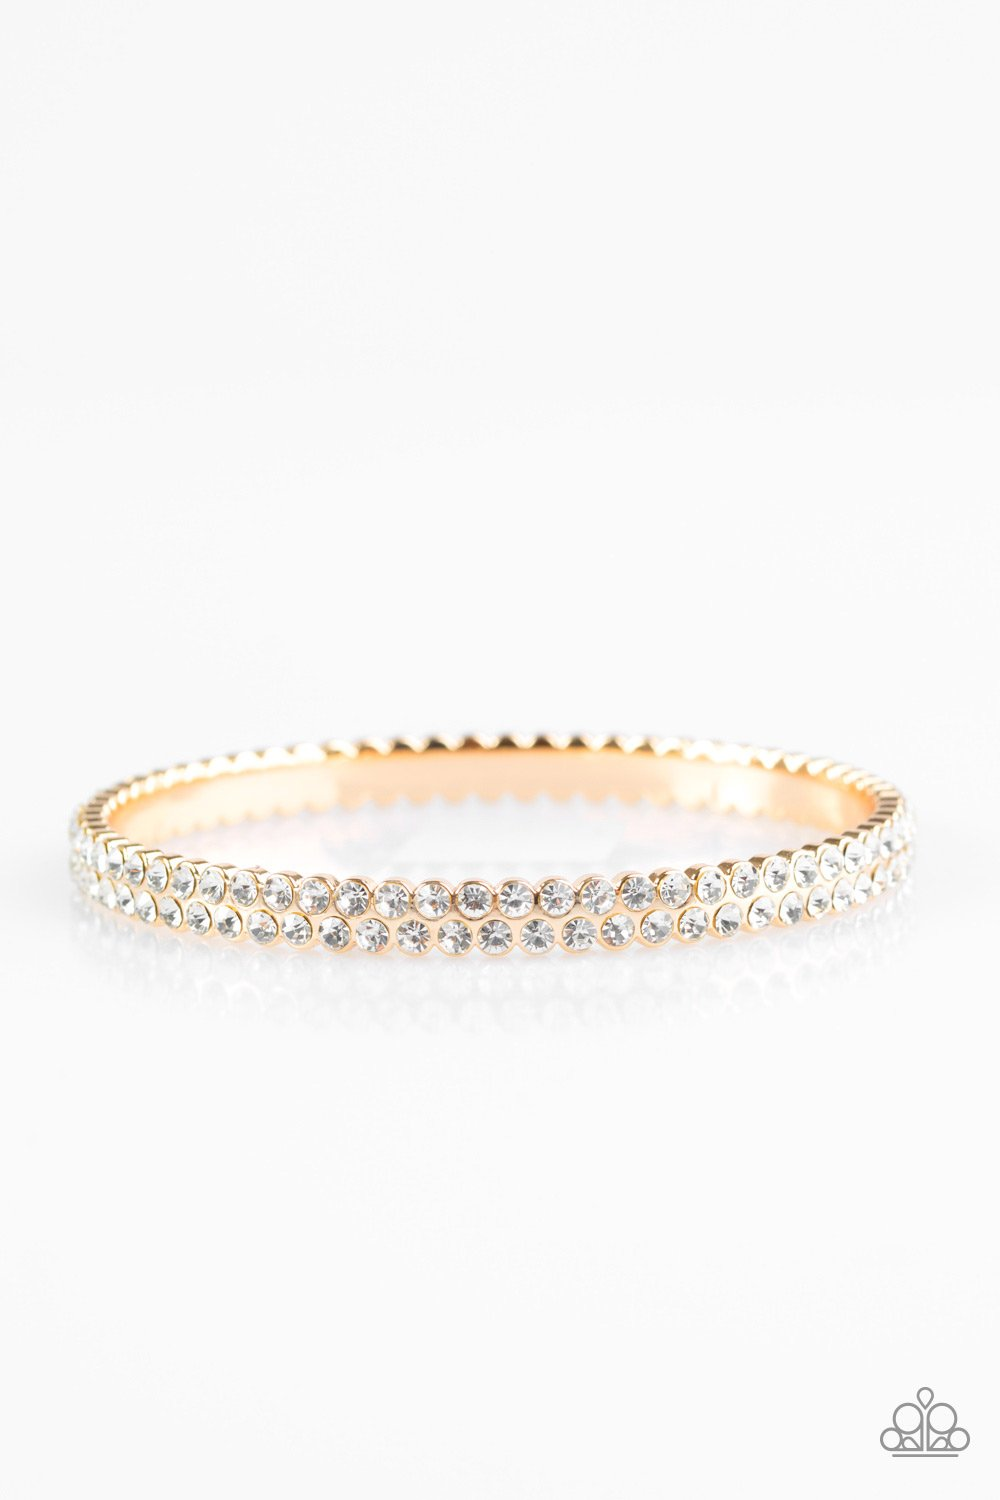 Paparazzi Accessories ~ Decked Out In Diamonds - Gold